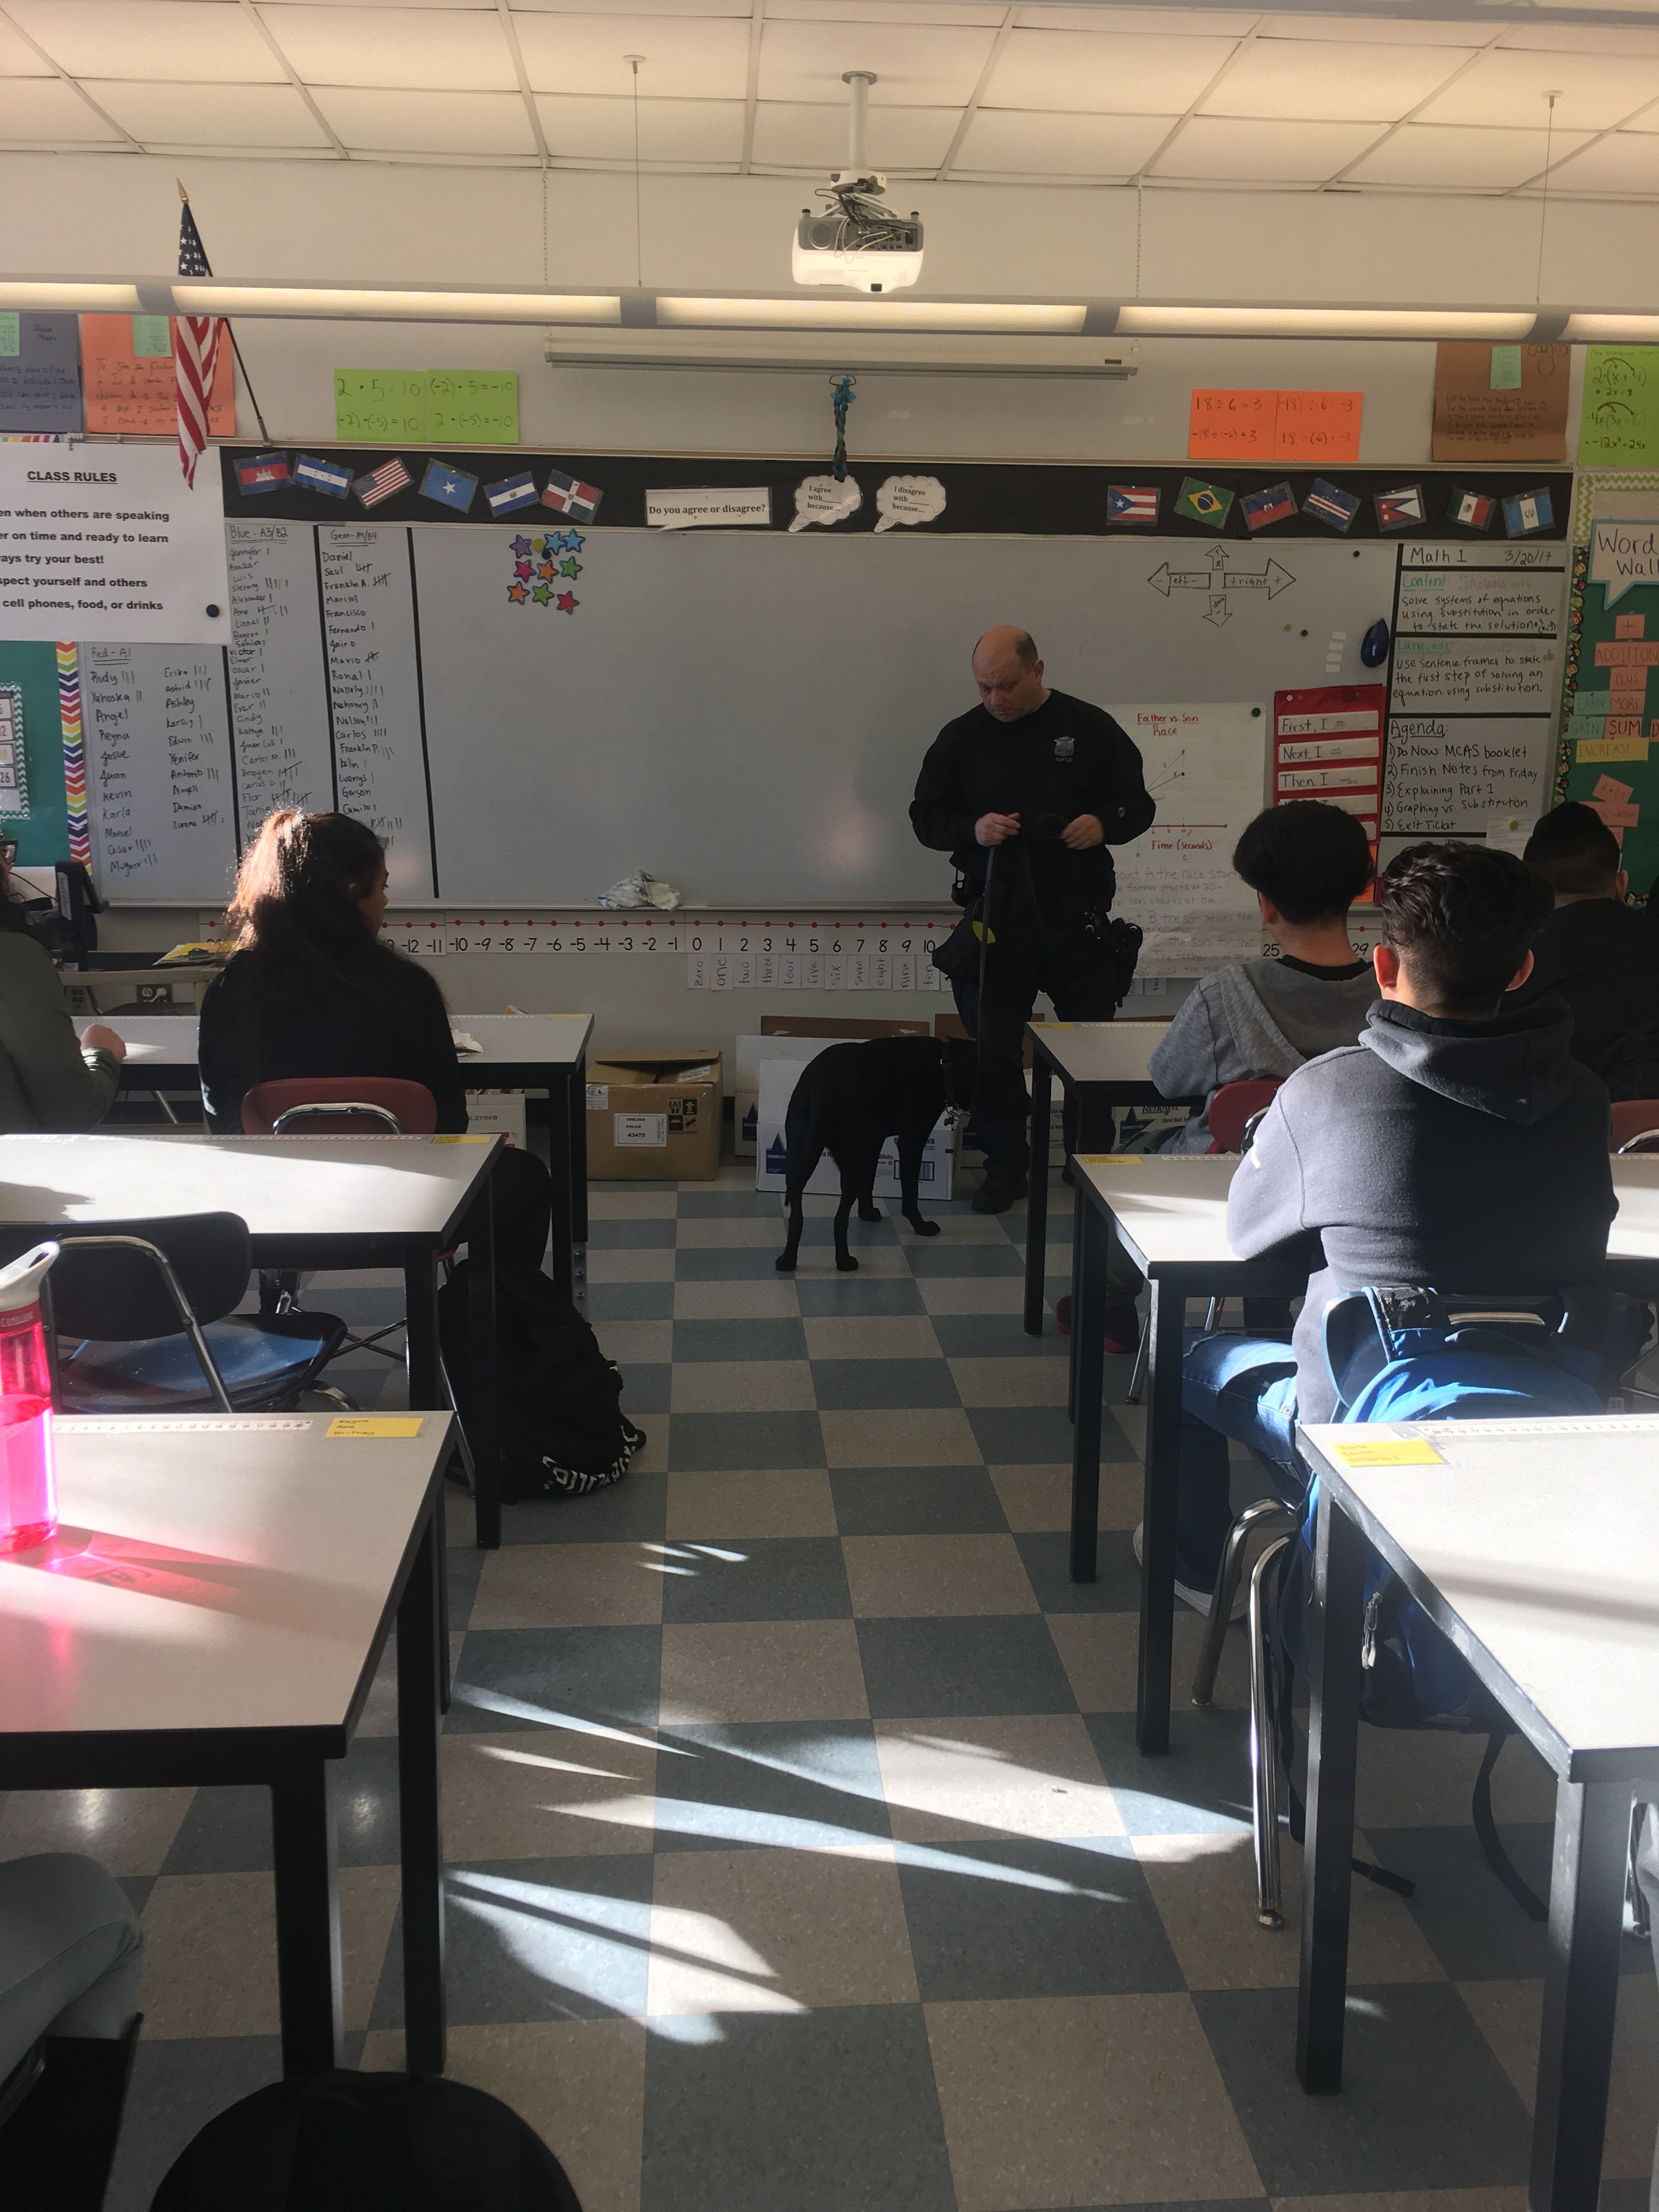 Youth Engagement Programs & Initiatives - Chelsea Police